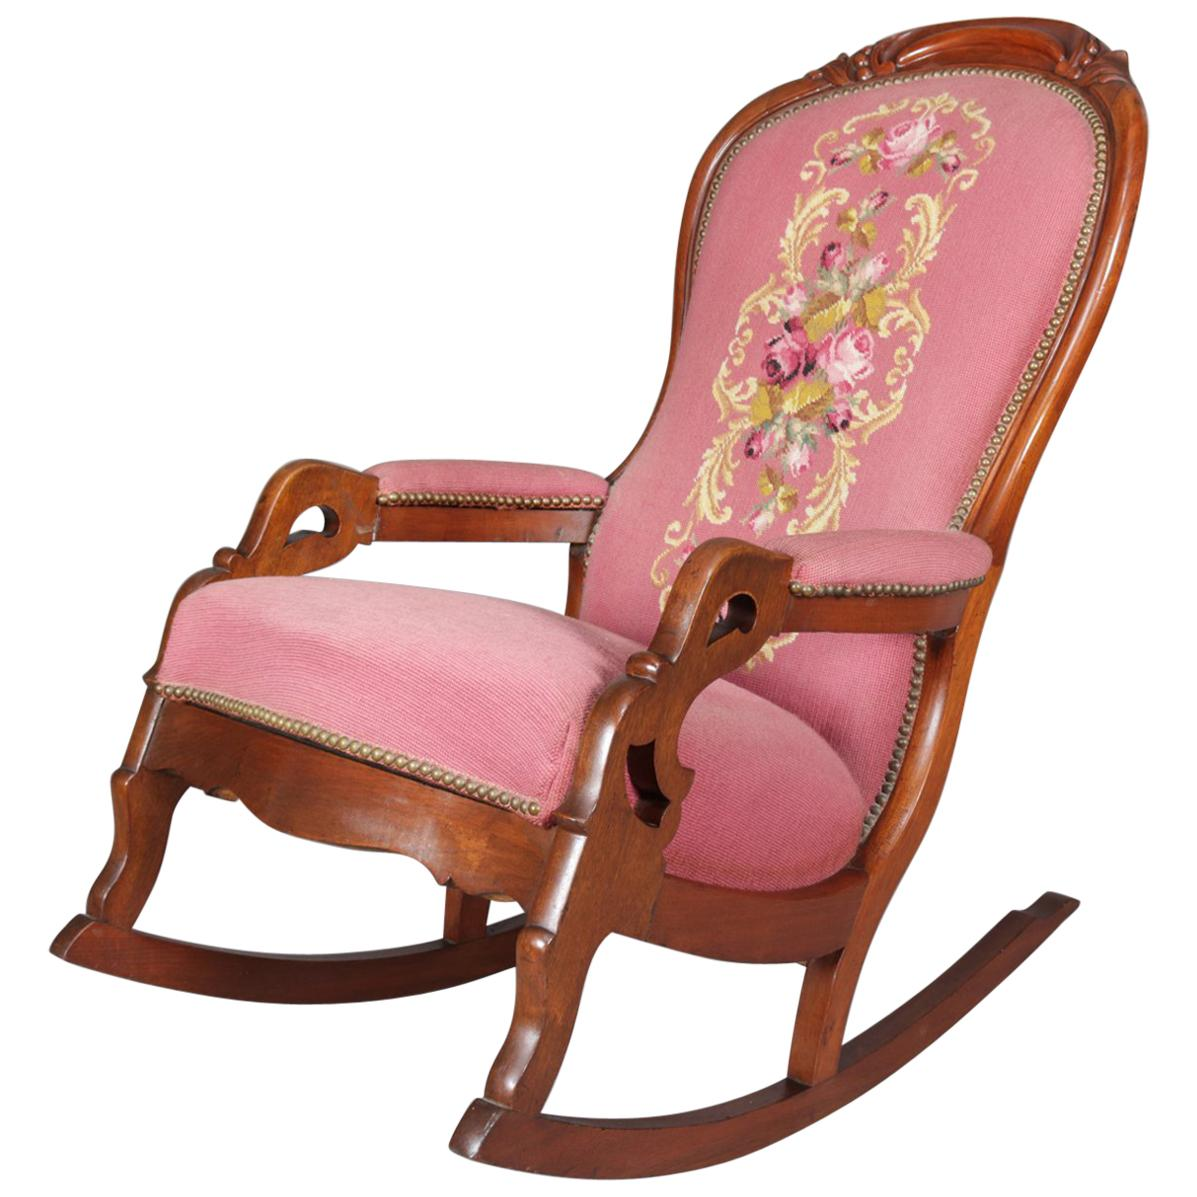 - 19th Century Rocking Chairs - 93 For Sale At 1stdibs